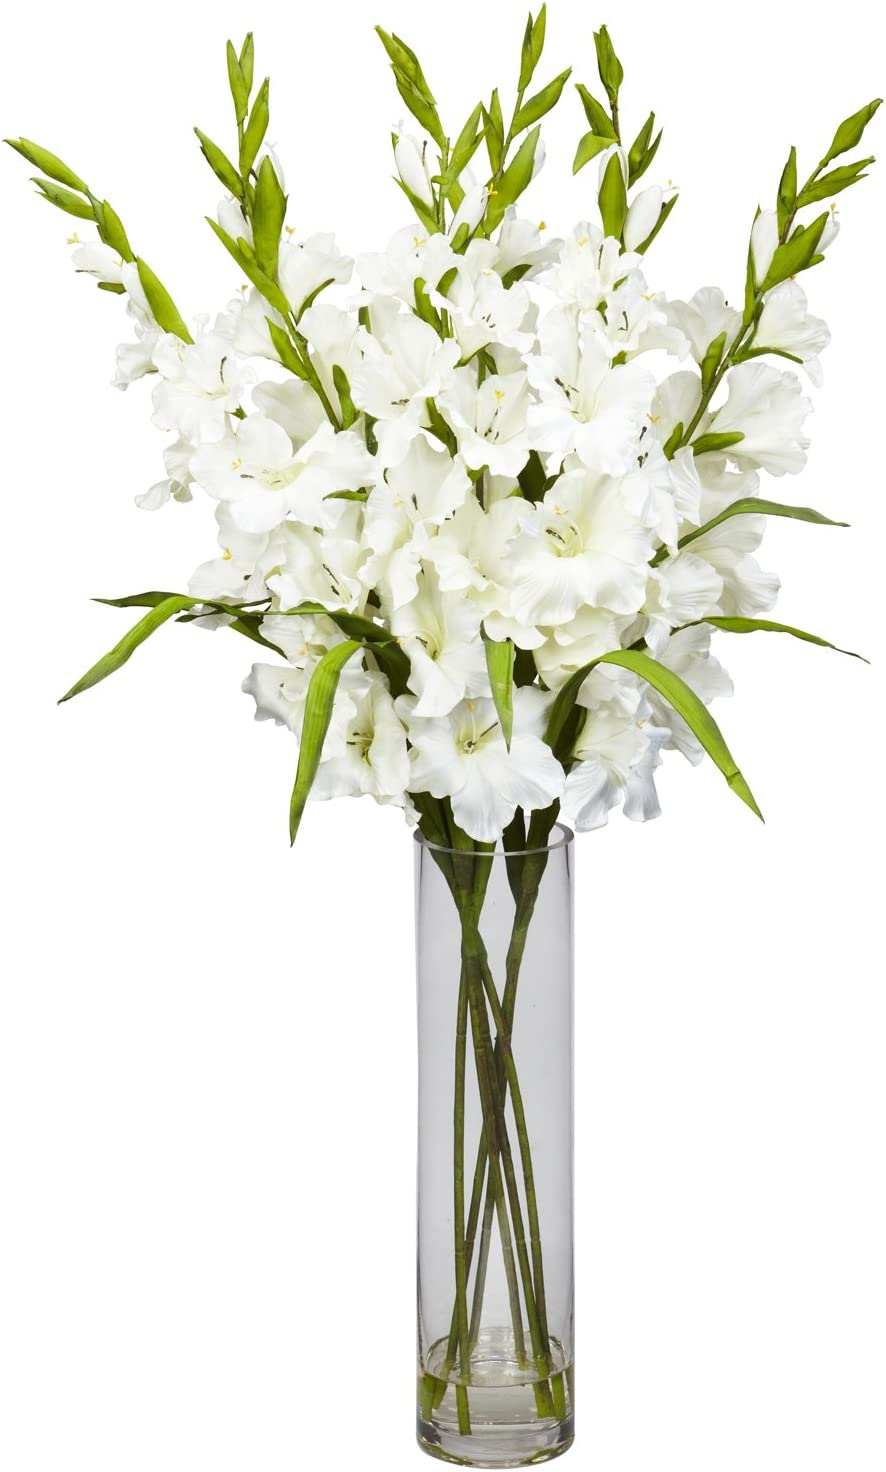 Amazon Com Nearly Natural 1240 Wh Large Gladiola With Cylinder Vase Silk Flower Arrangement White 42 X 11 X 11 Home Kitchen